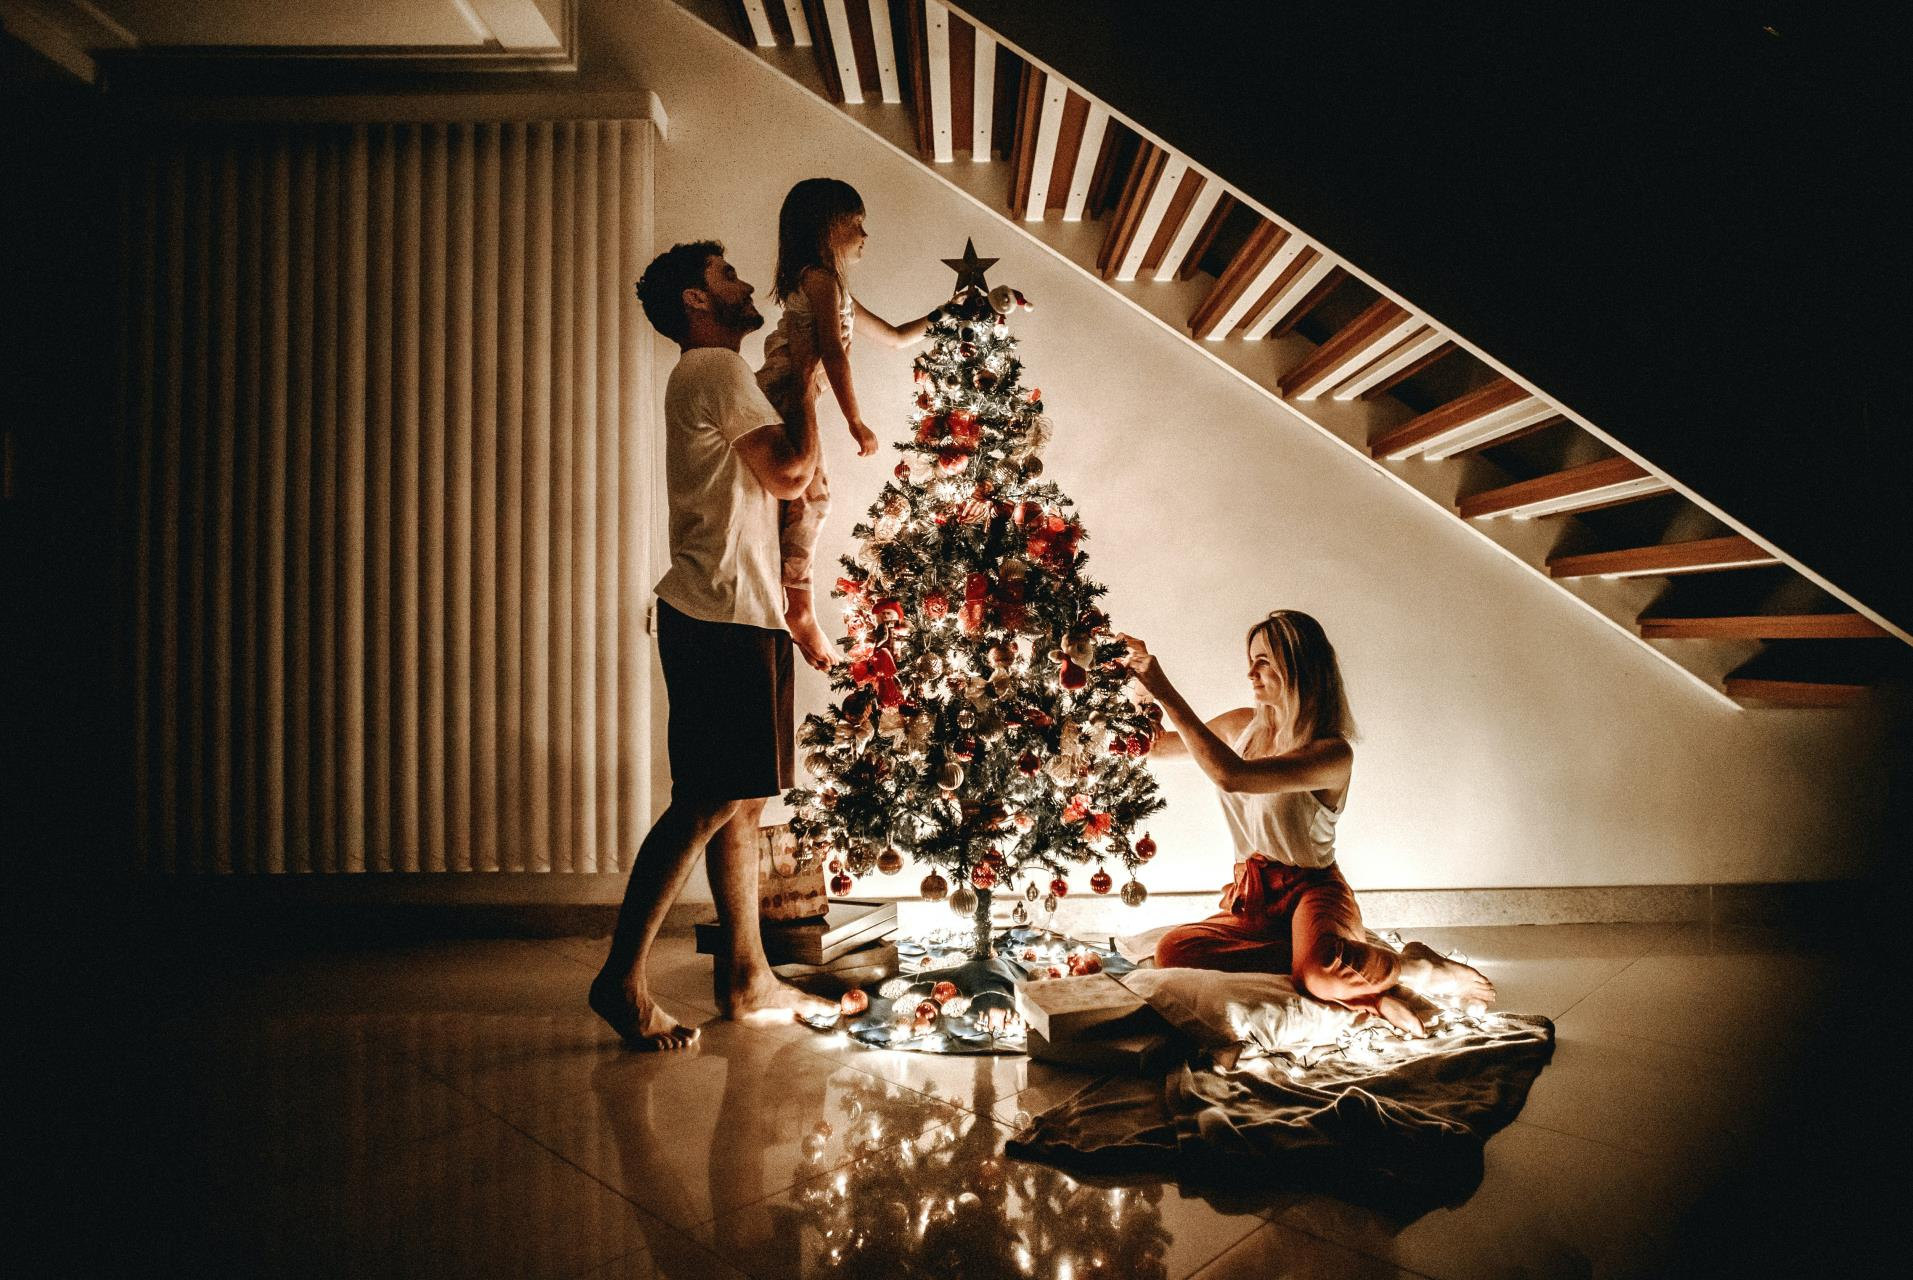 The Festive Season and its Challenges